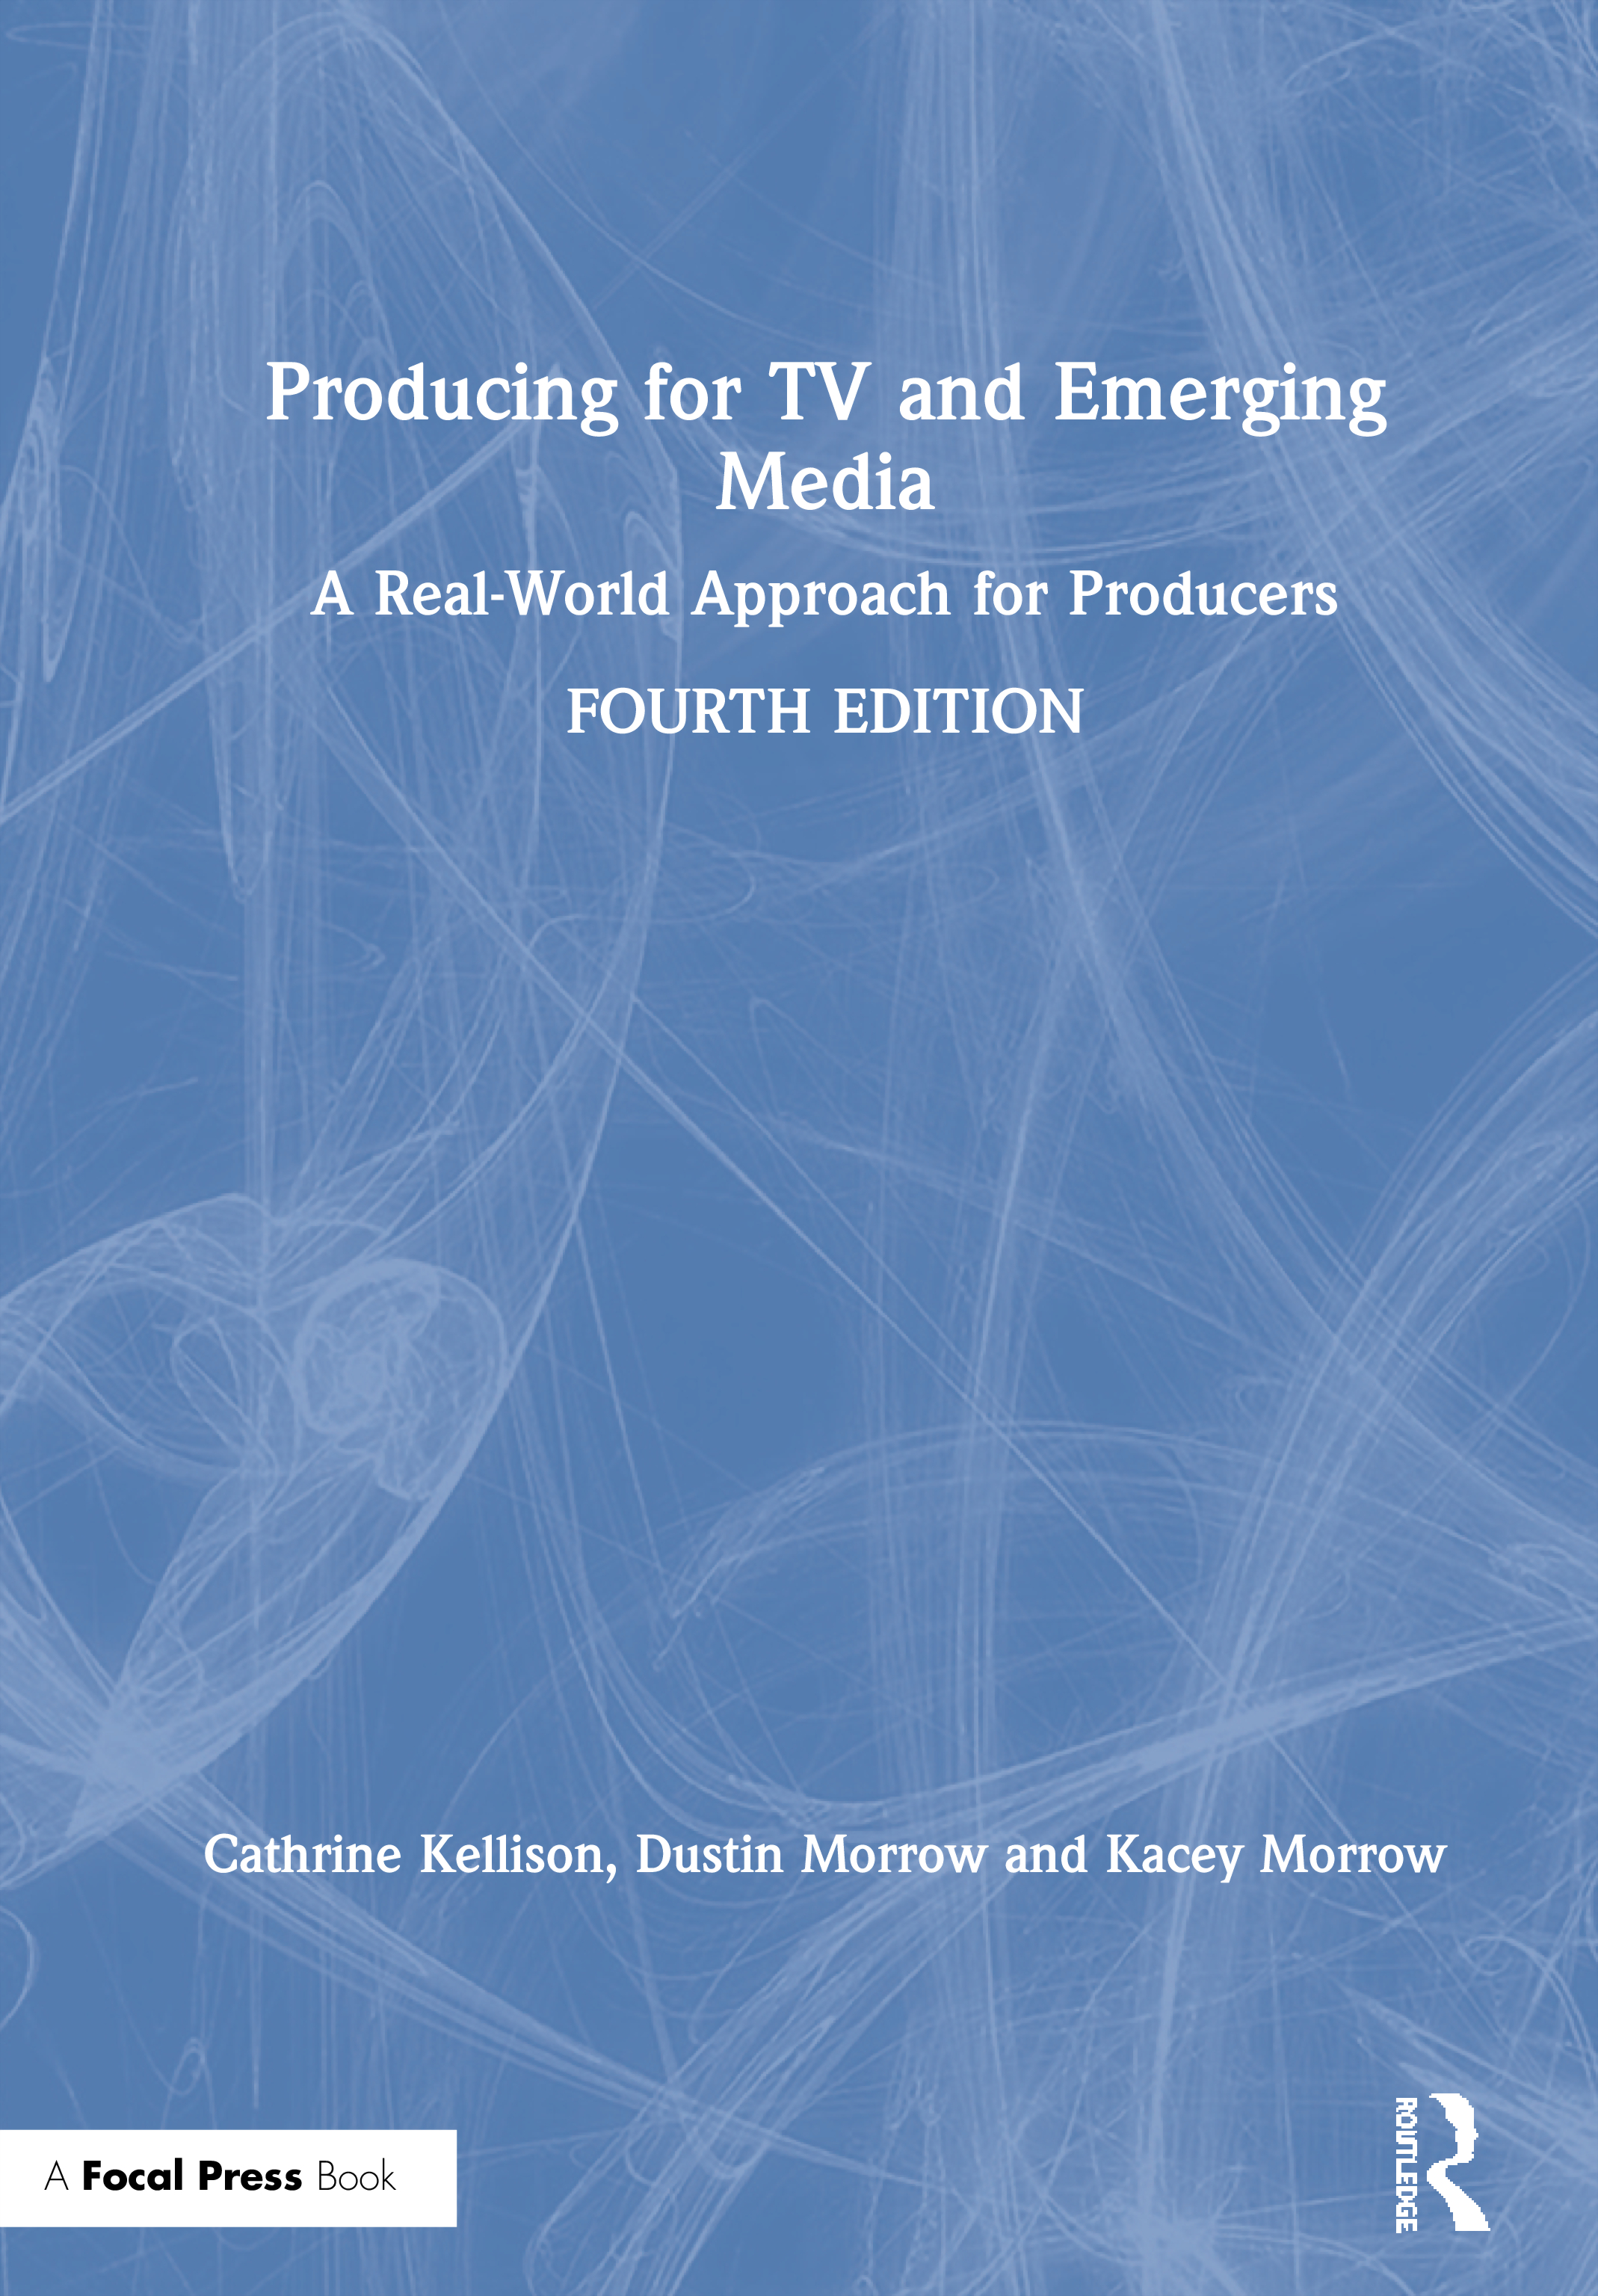 Producing for TV and Emerging Media: A Real-World Approach for Producers book cover